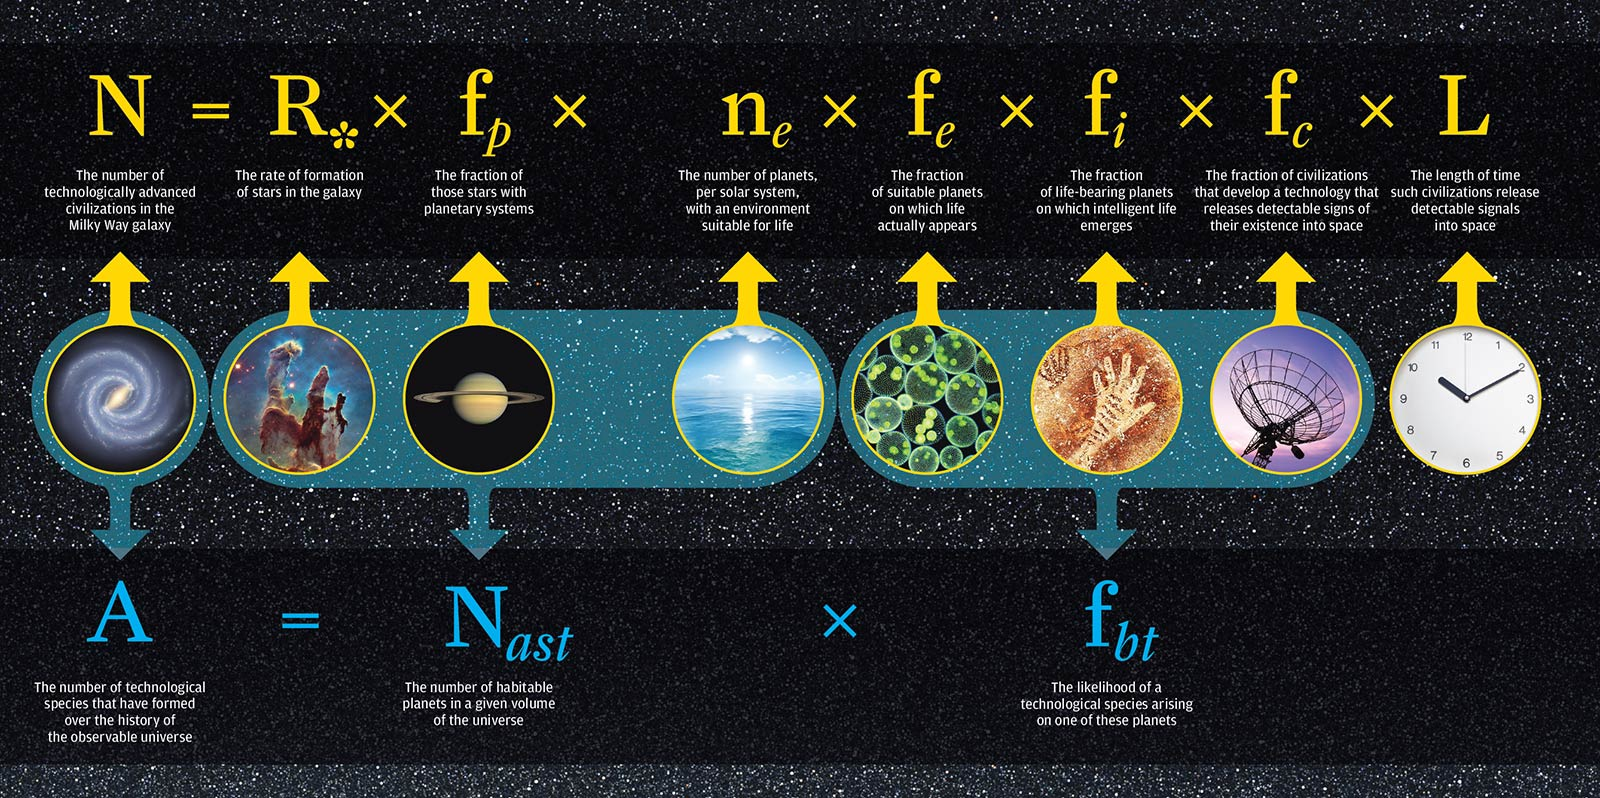 illustration of the Drake equation and the Frank equation